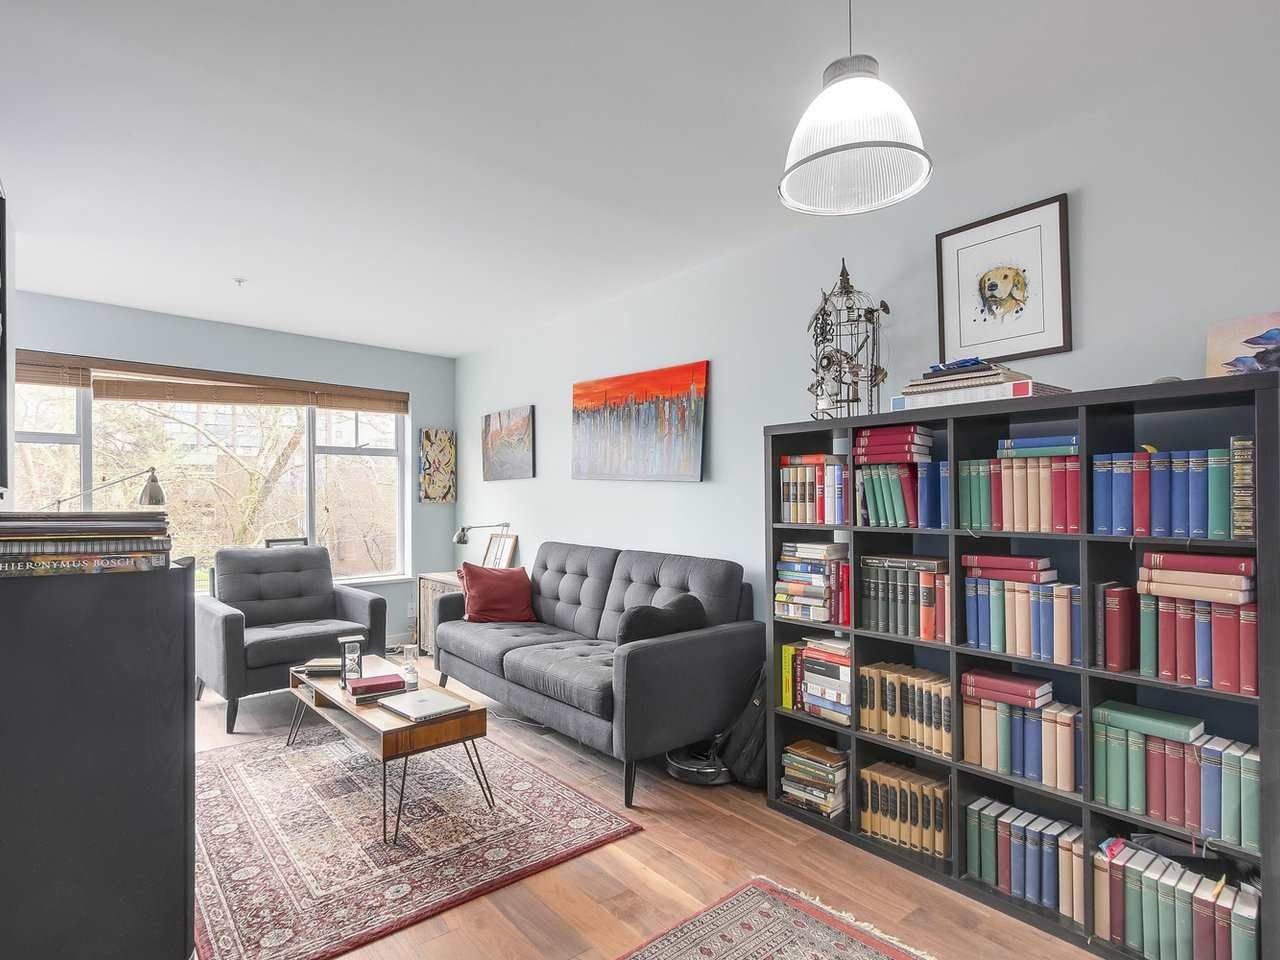 """Main Photo: 202 663 GORE Avenue in Vancouver: Mount Pleasant VE Condo for sale in """"Strathcona Edge"""" (Vancouver East)  : MLS®# R2305555"""